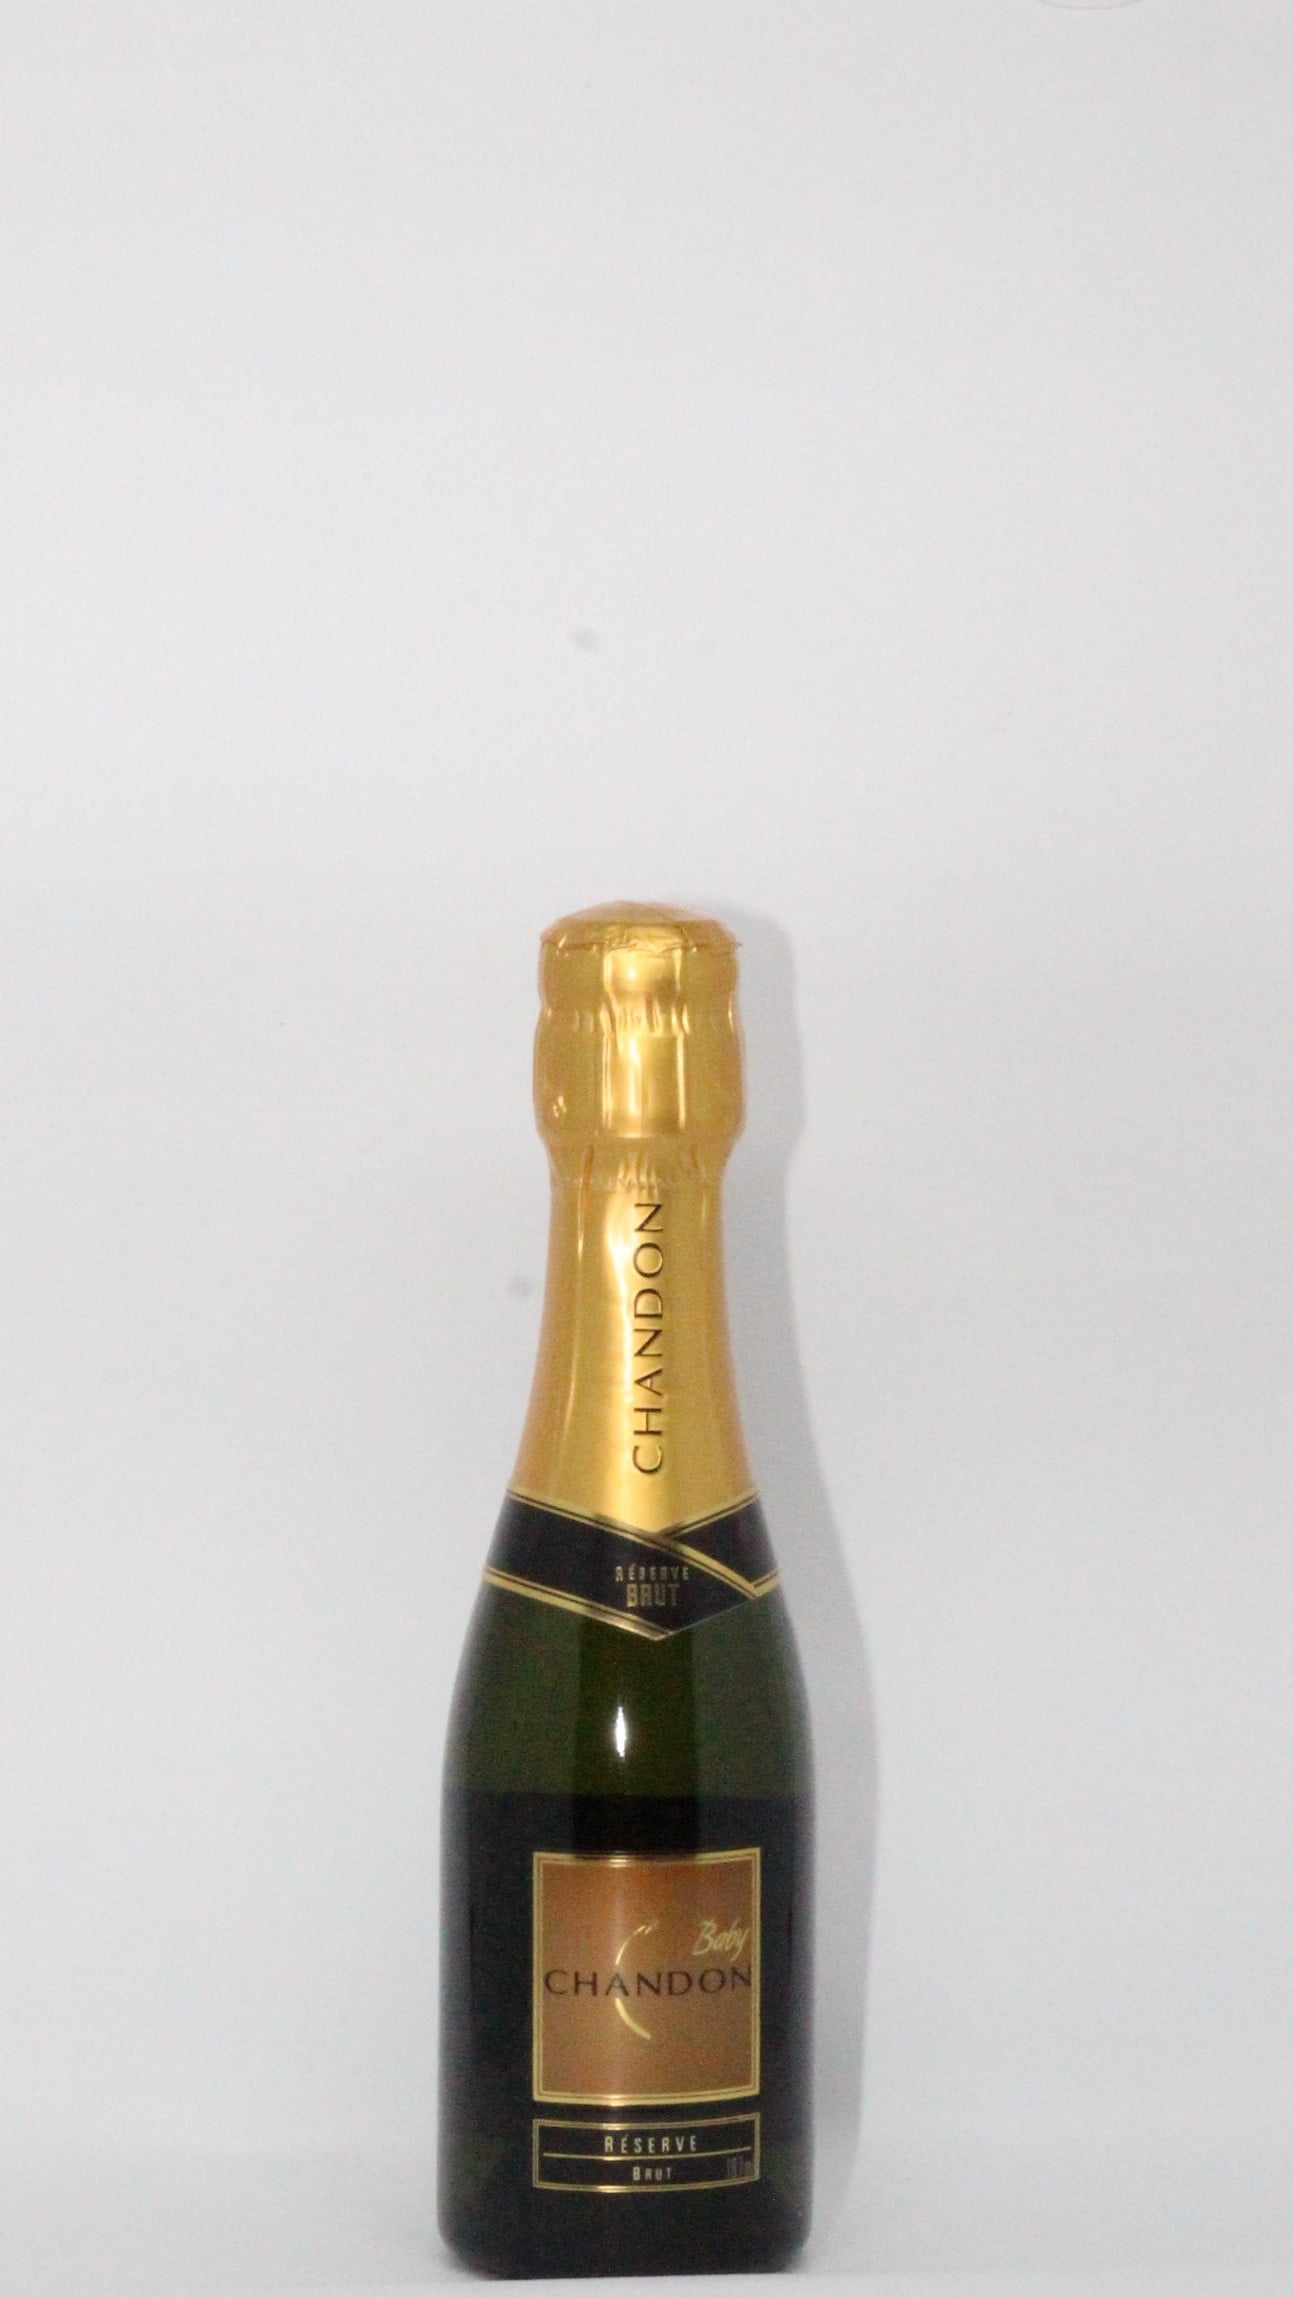 ESPUMANTE CHANDON BABY BRUT - 187ml